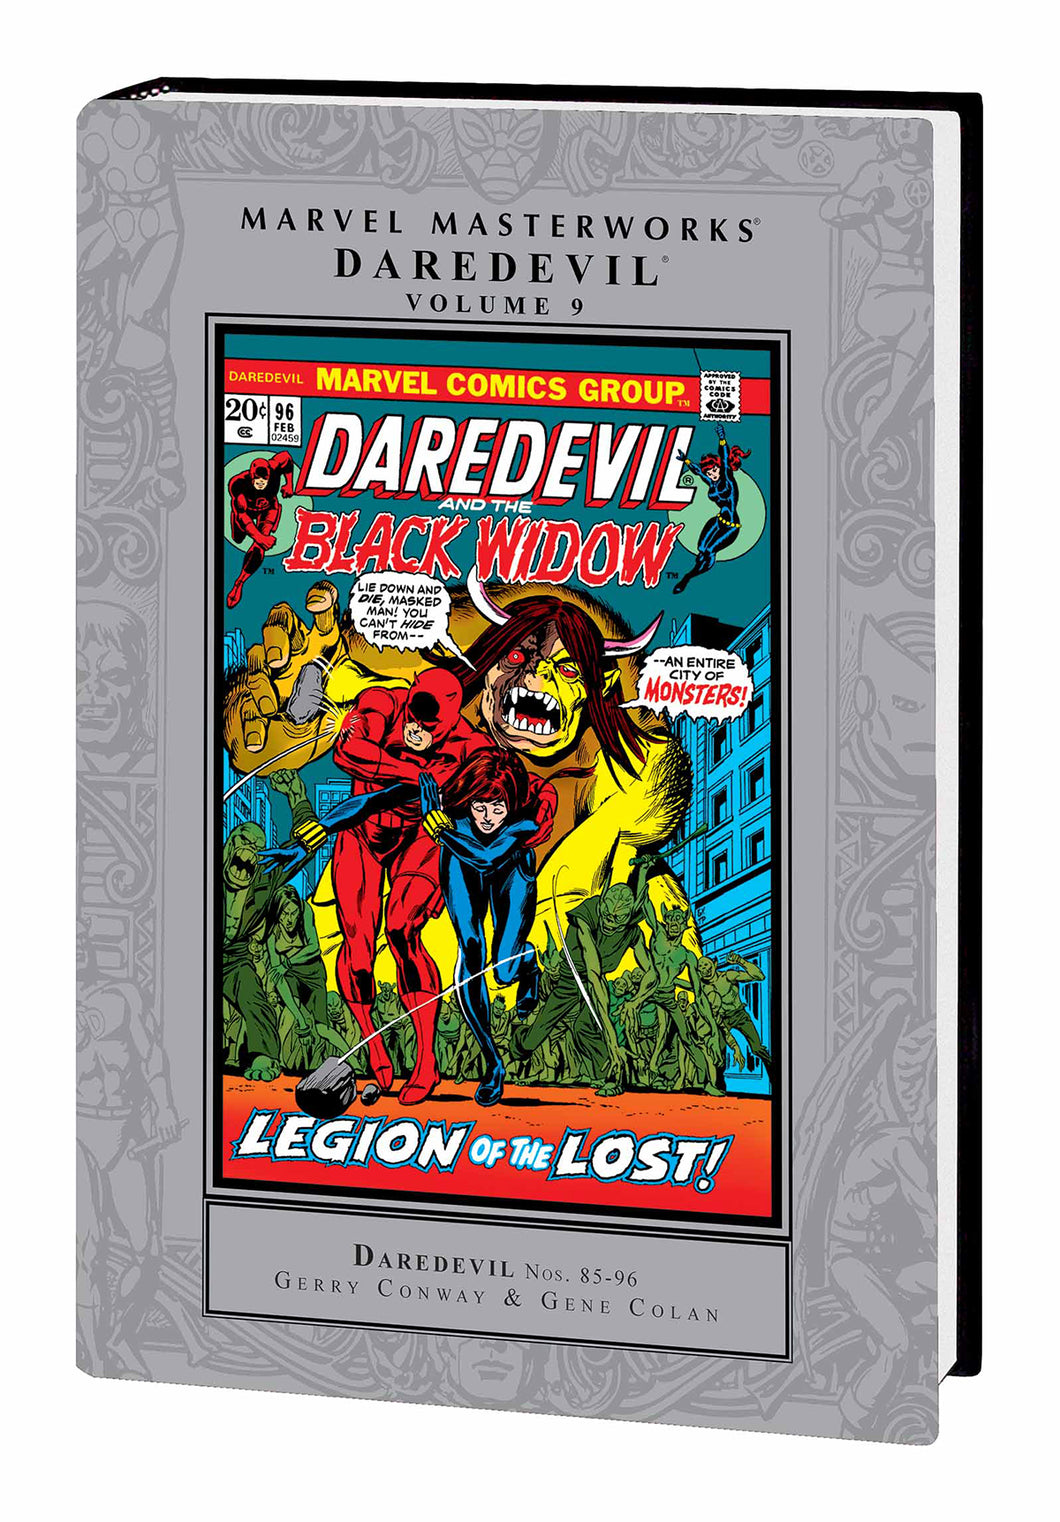 MMW DAREDEVIL HC VOL 09 *OOP*